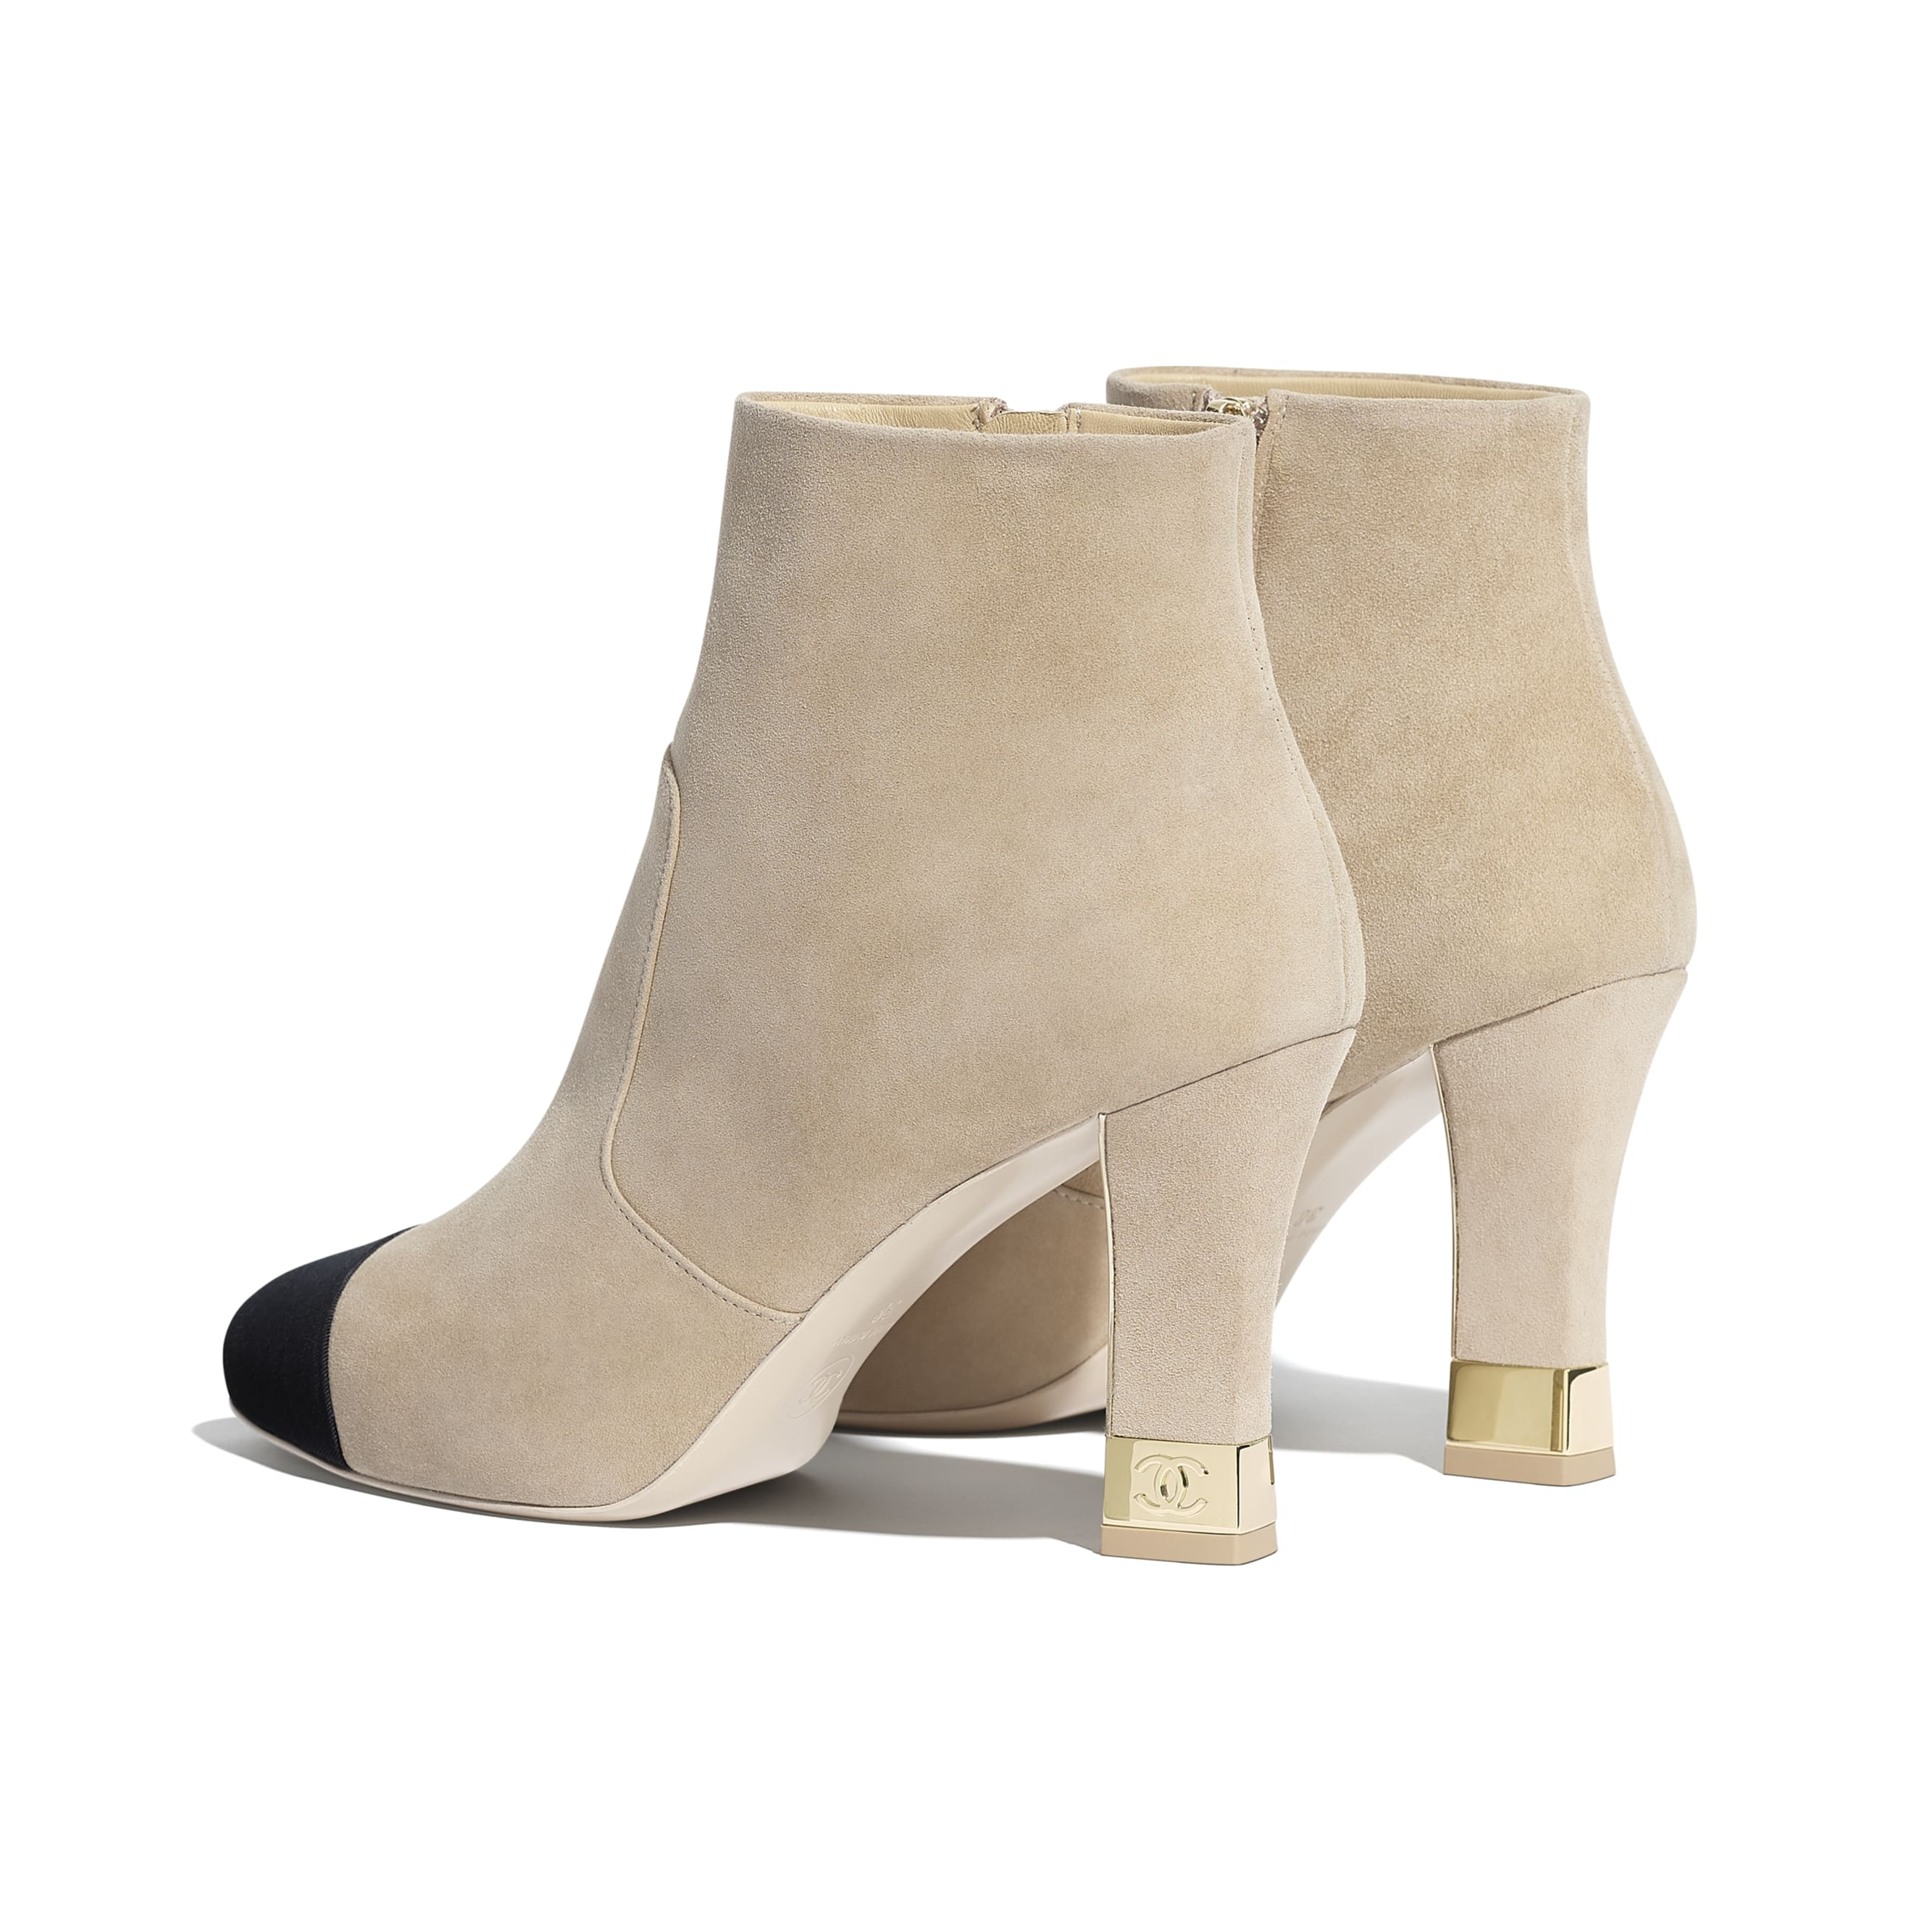 Ankle Boots - Beige & Black - Suede Kidskin & Grosgrain - CHANEL - Other view - see standard sized version